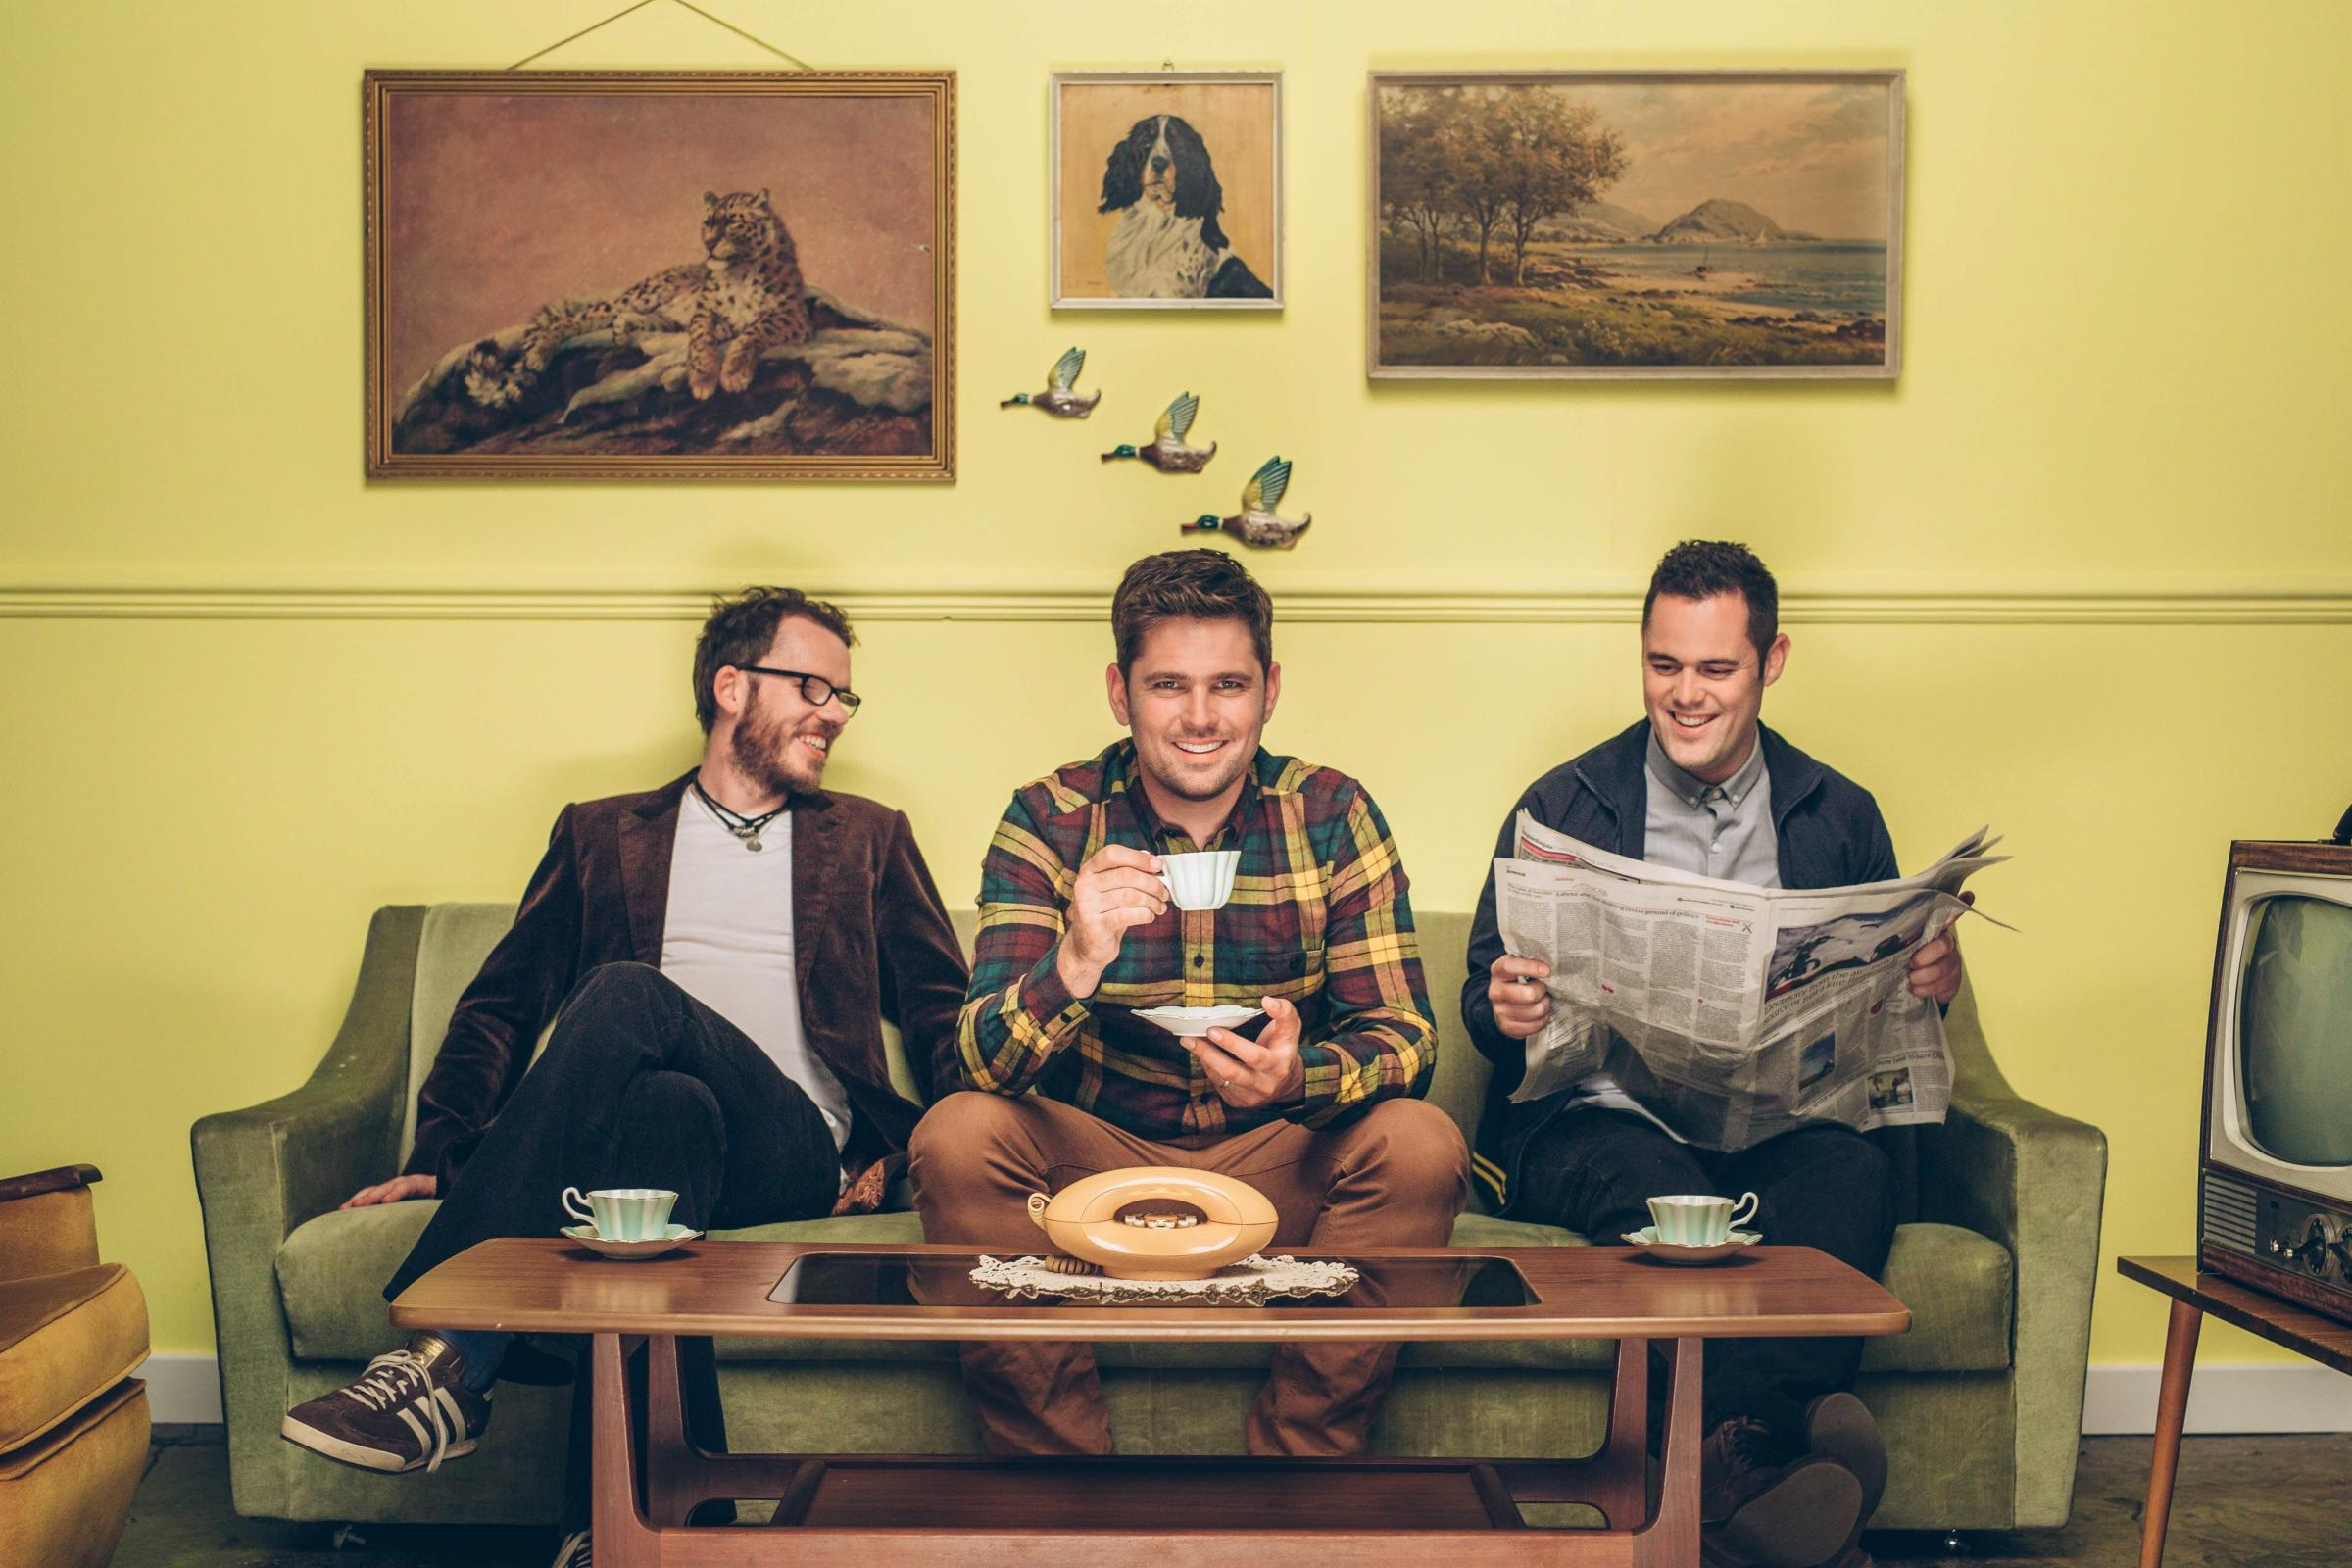 Scouting for Girls will headline the Saturday night